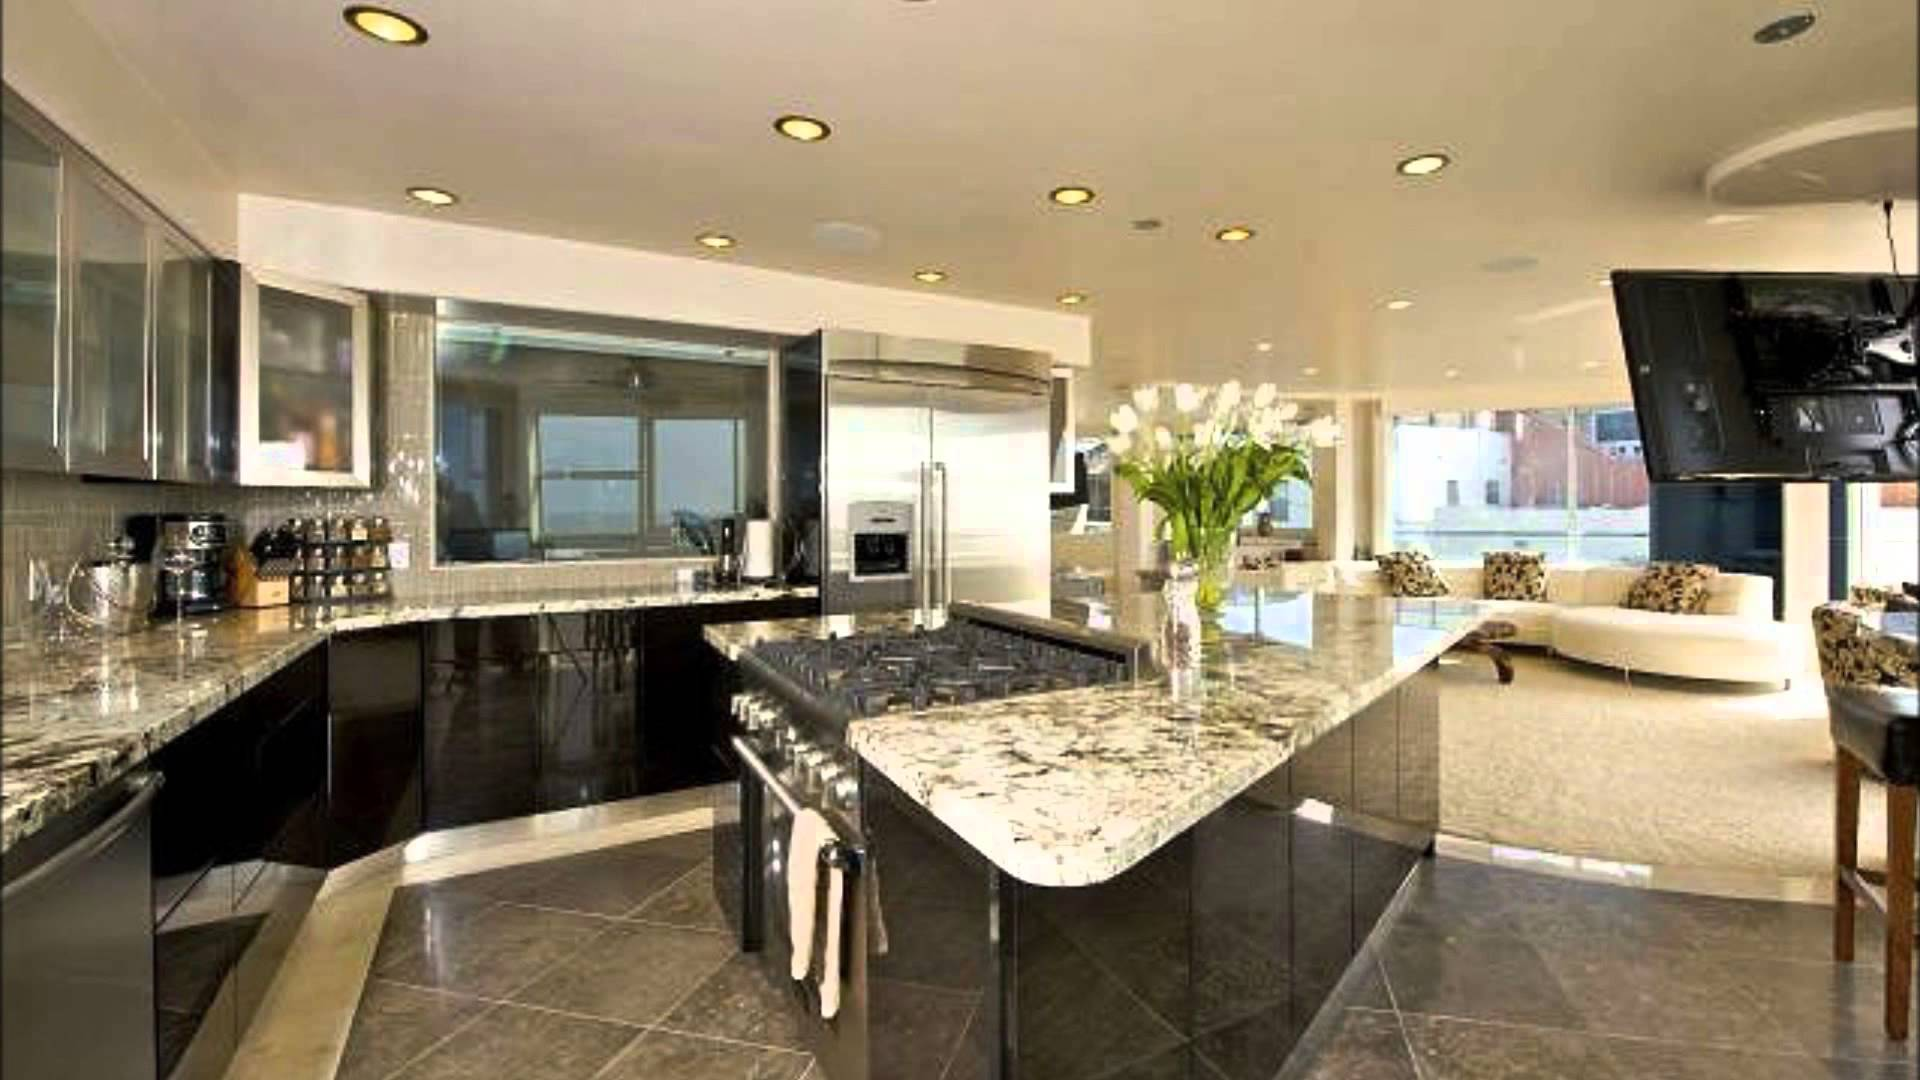 Design your own kitchen ideas with images for Kitchen ideas